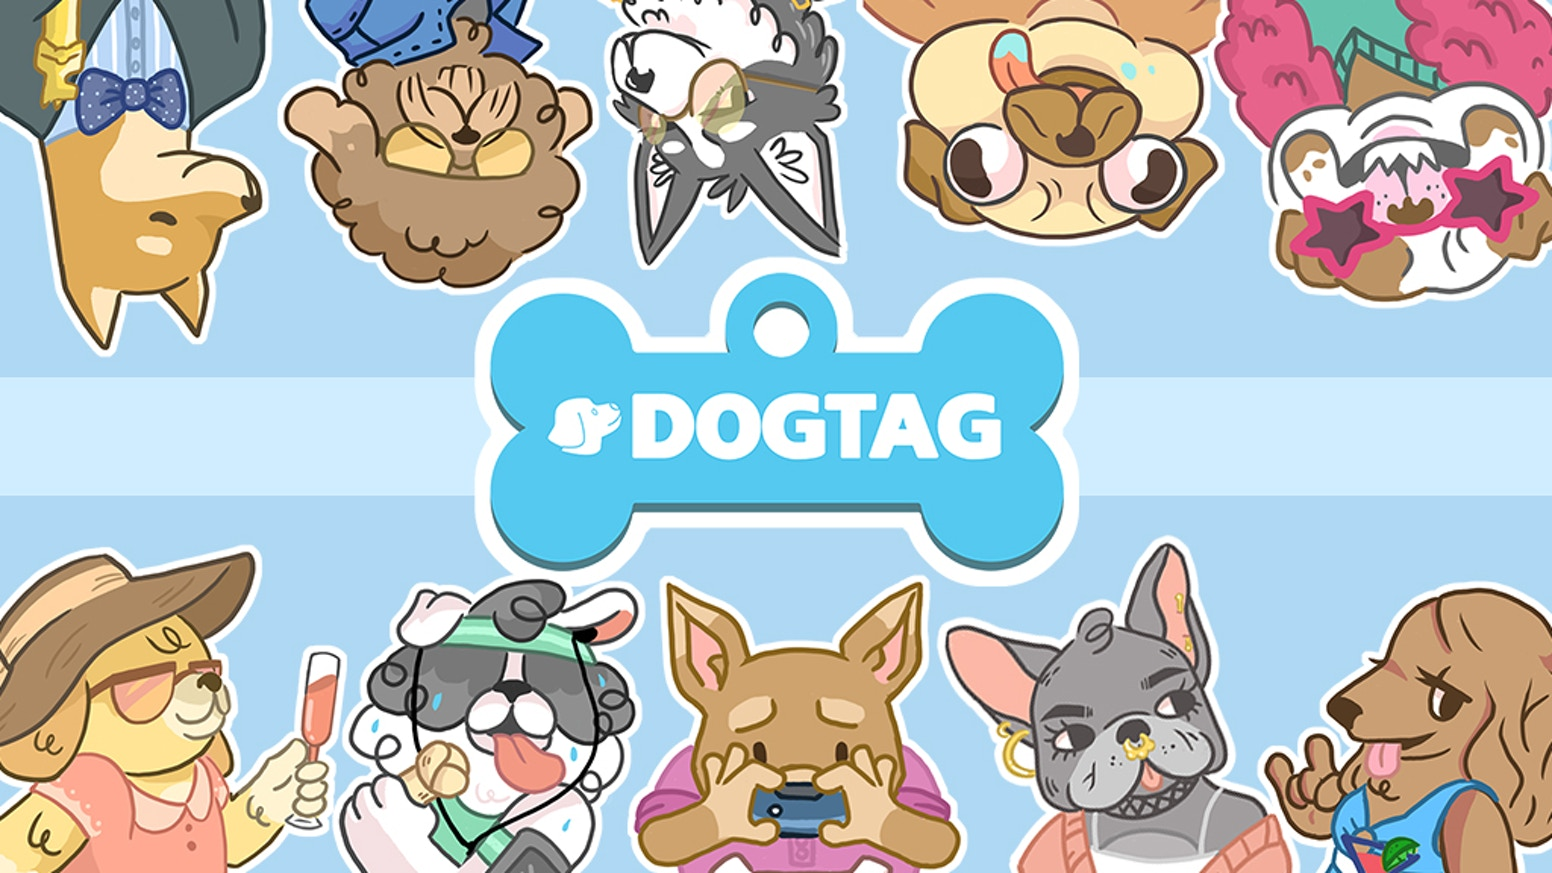 Dogtag: The Attention Grabbing Card Game For Dogpeople